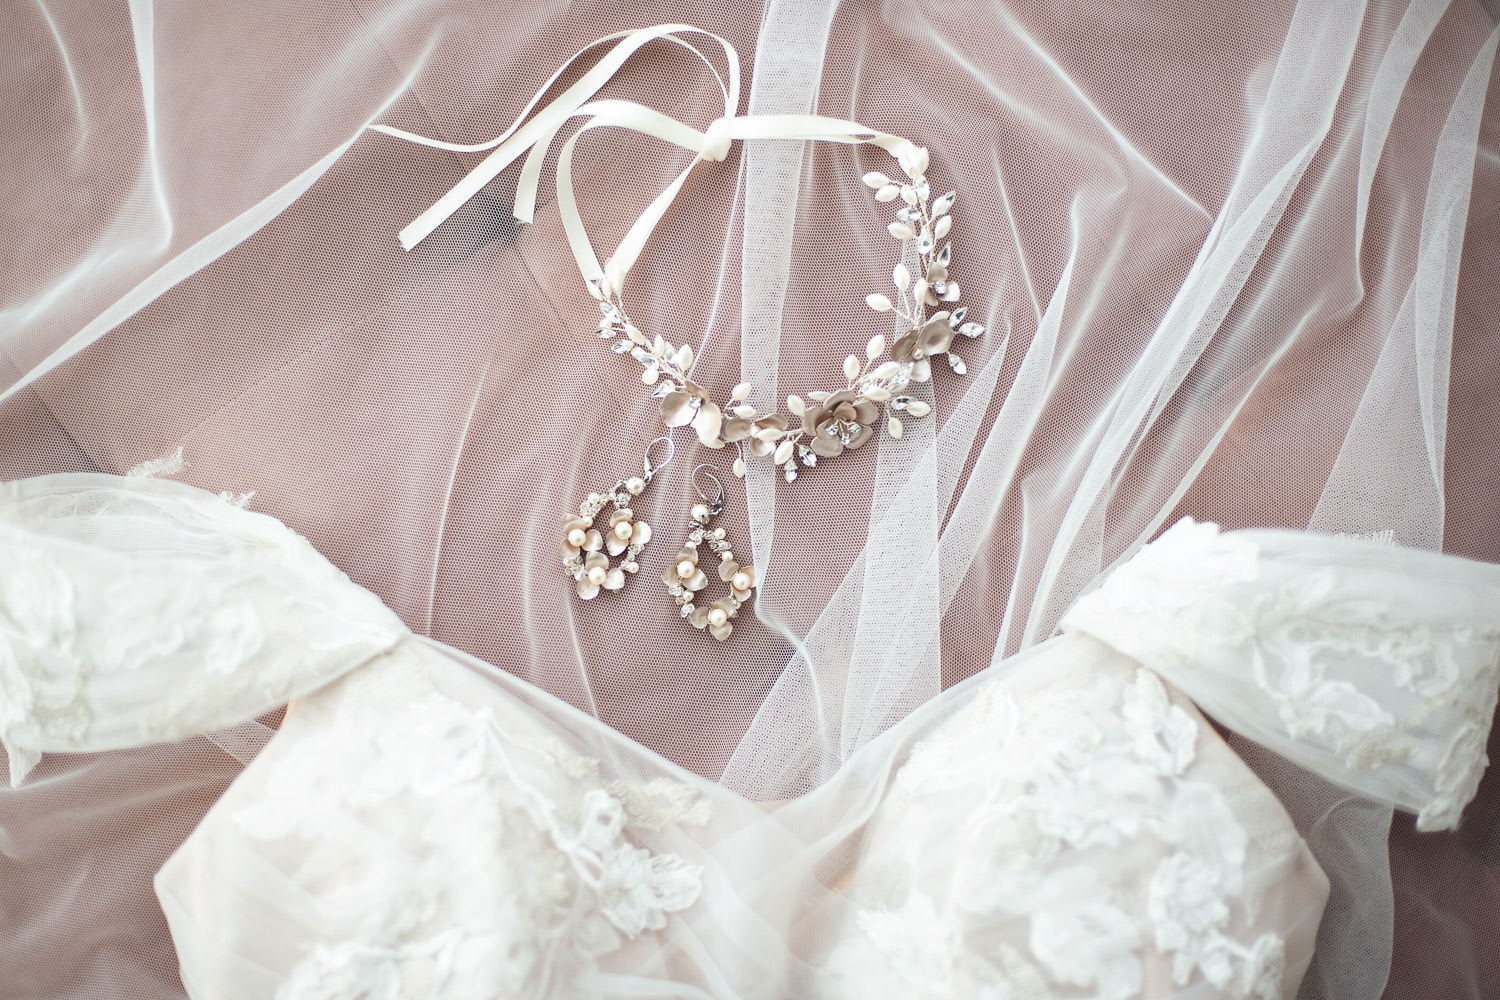 bridal jewelry available at Blush & Raven captured by Tara Whittaker Photography